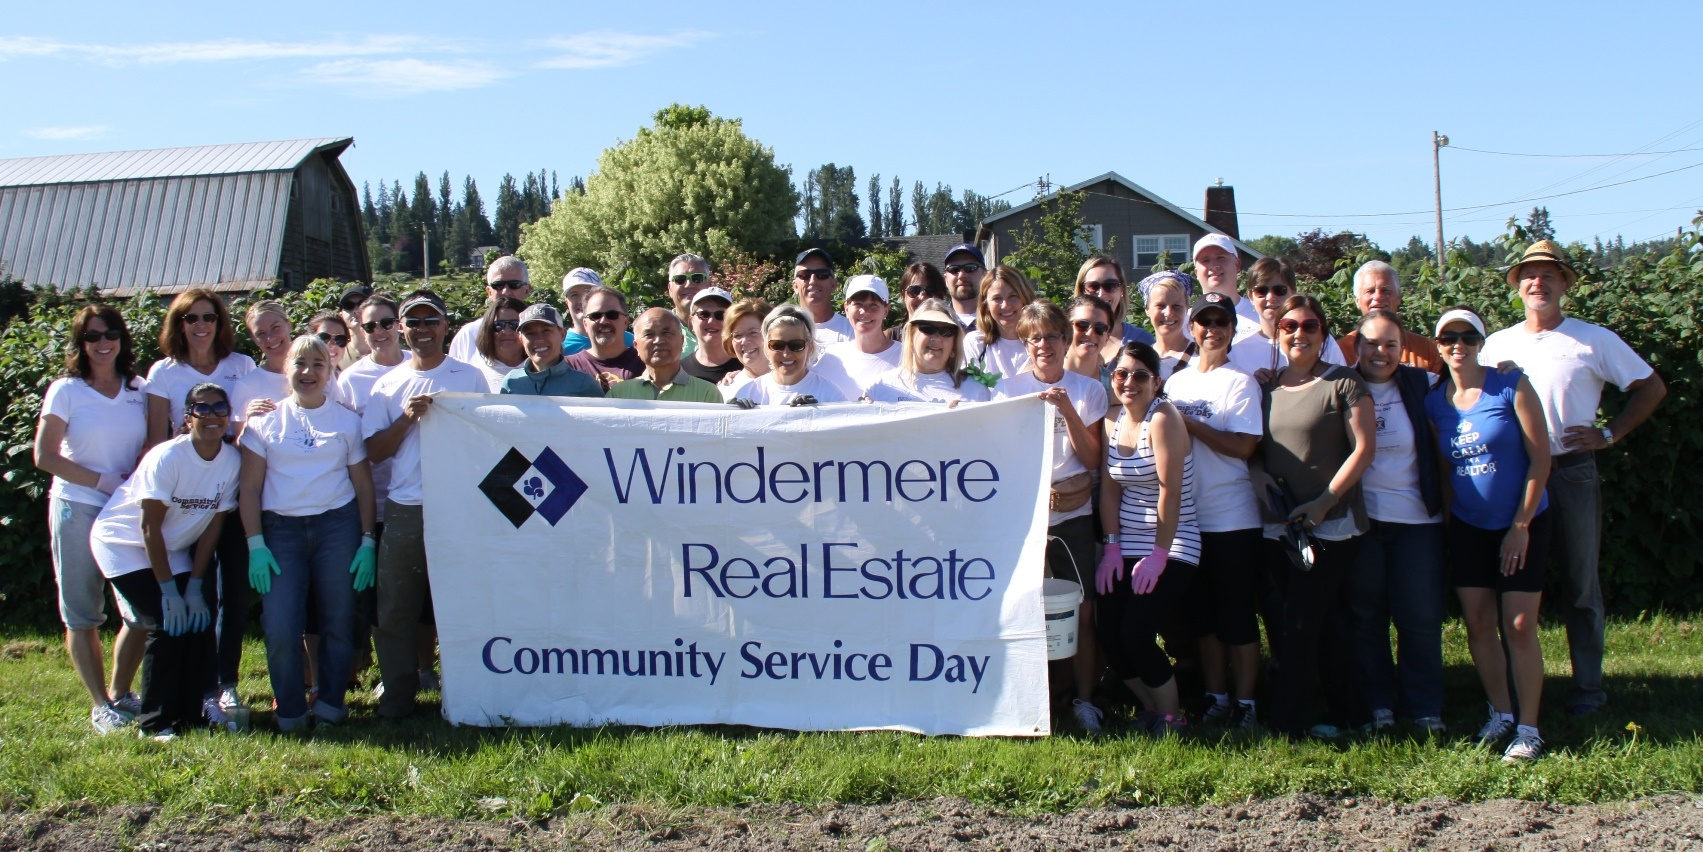 Windermere.North.Community.Service.Day